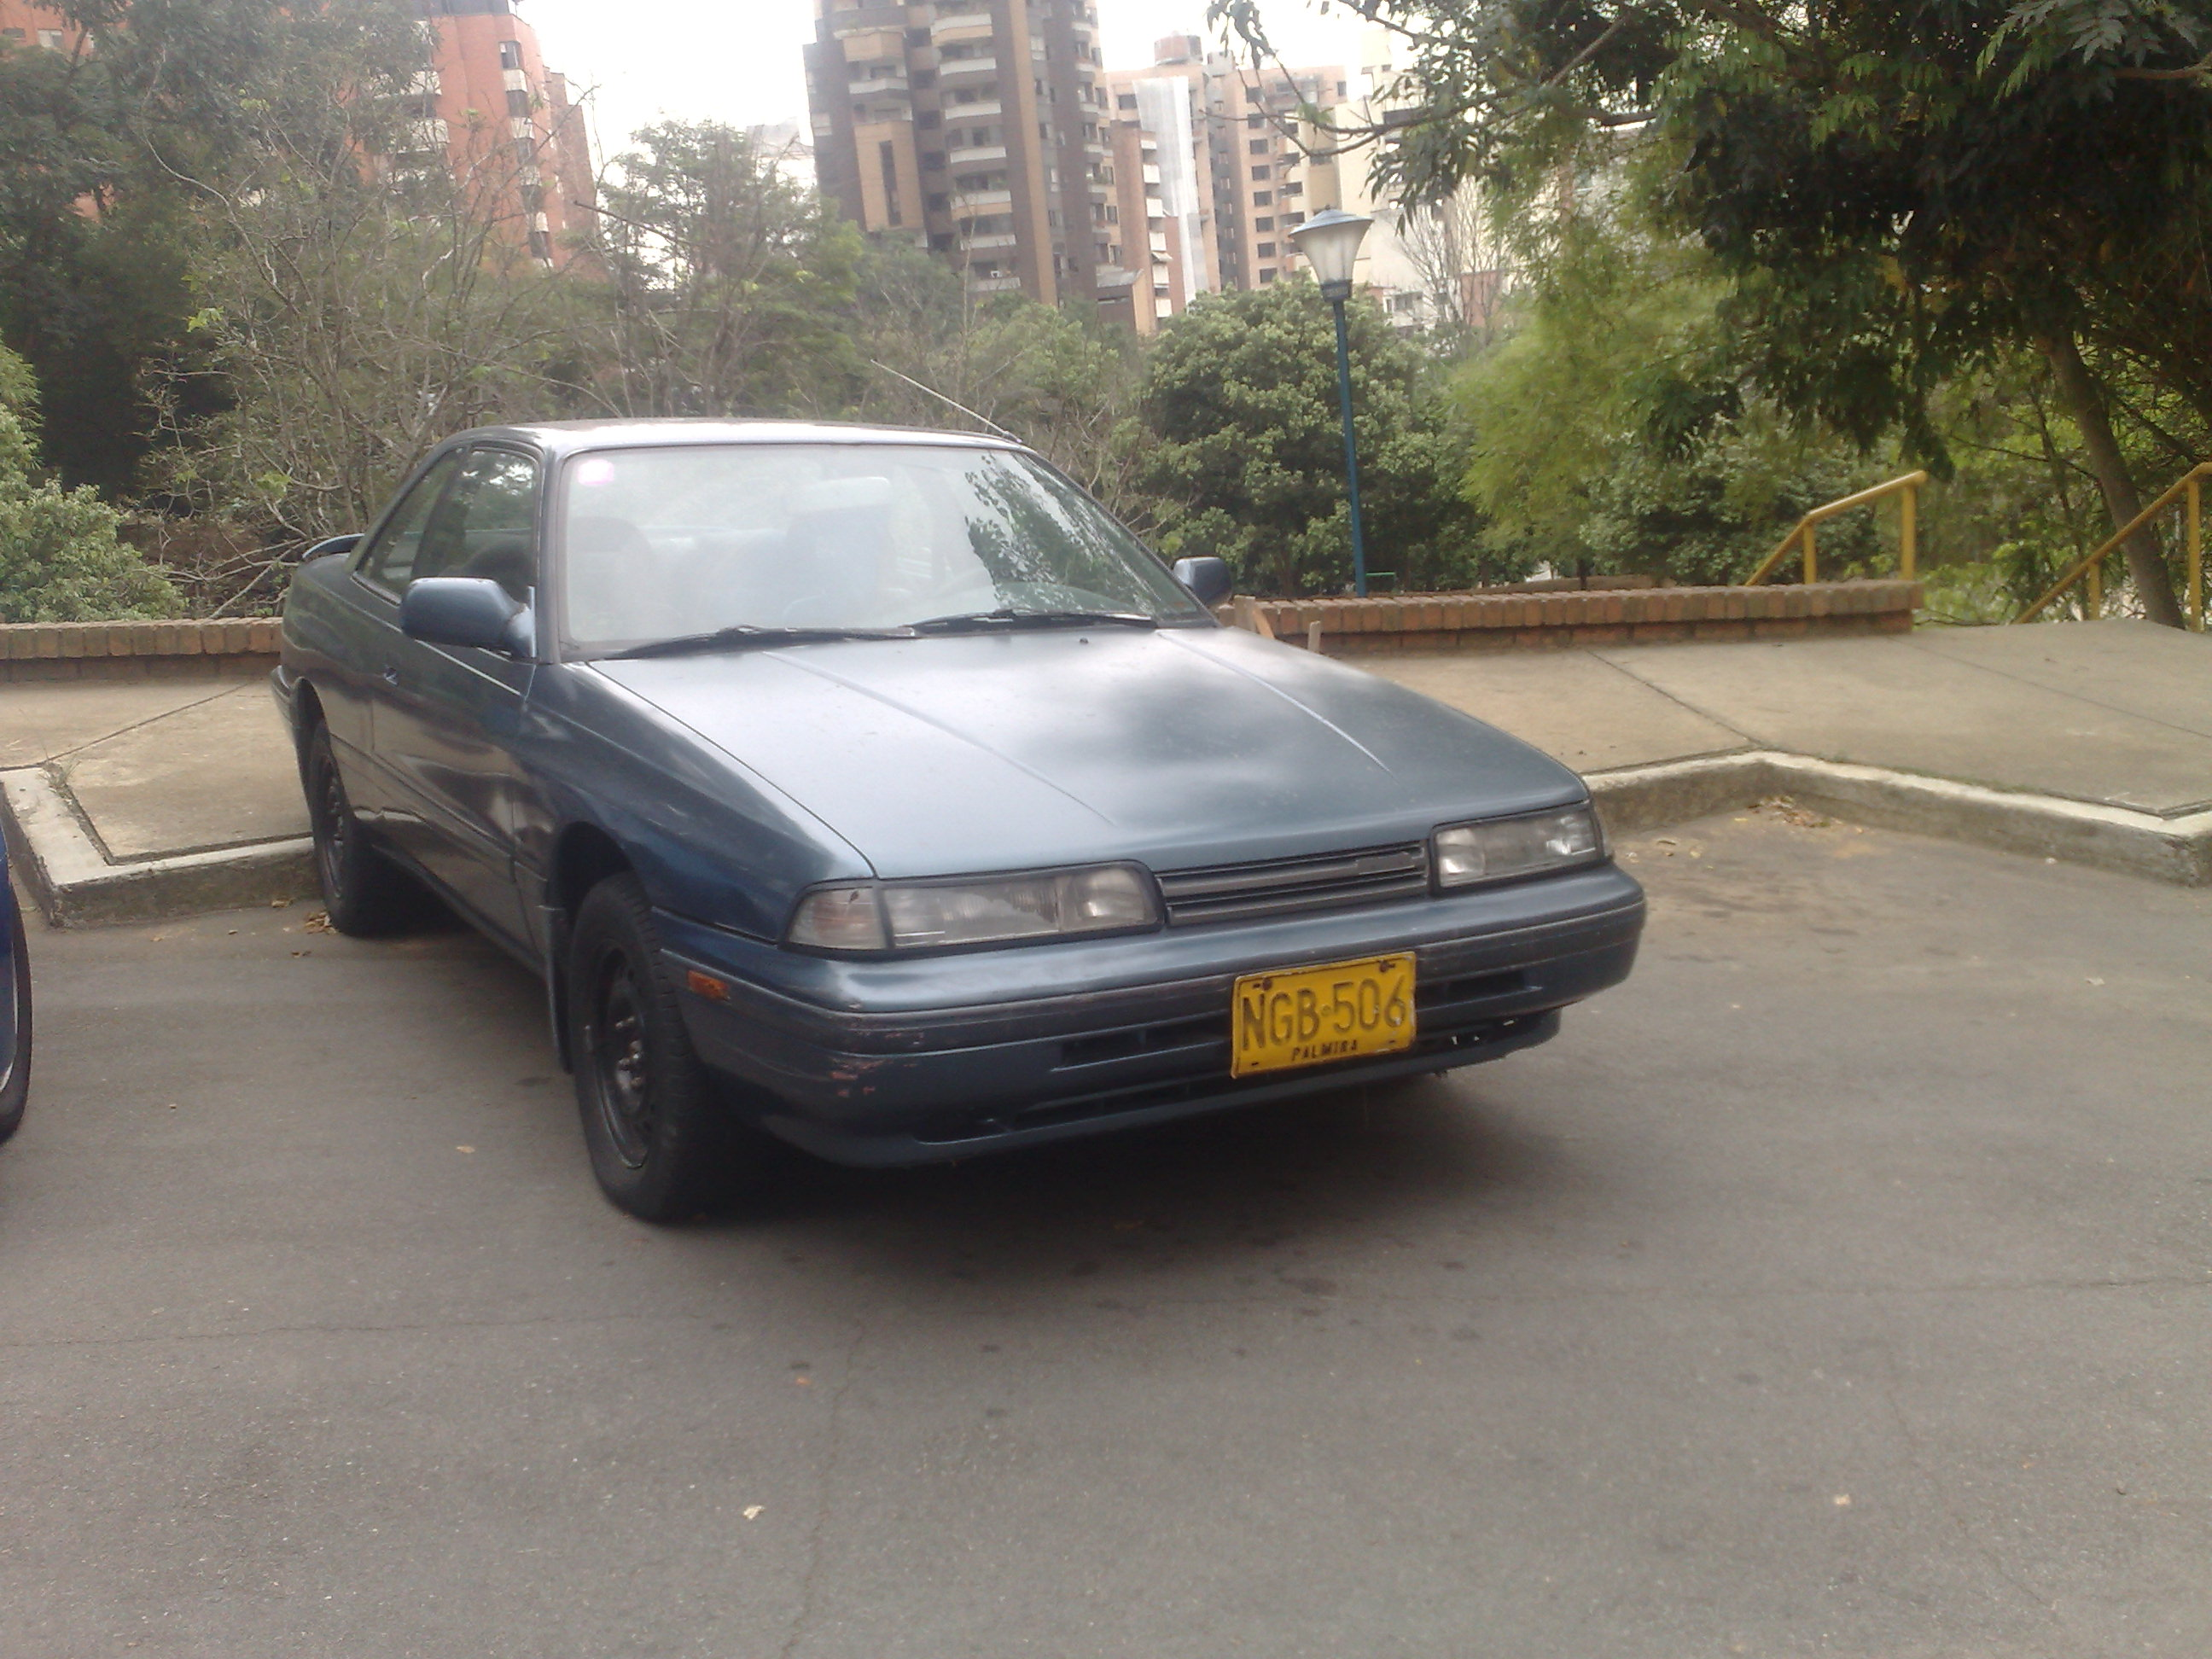 file:1987-1990 mazda 626 glx - wikimedia commons